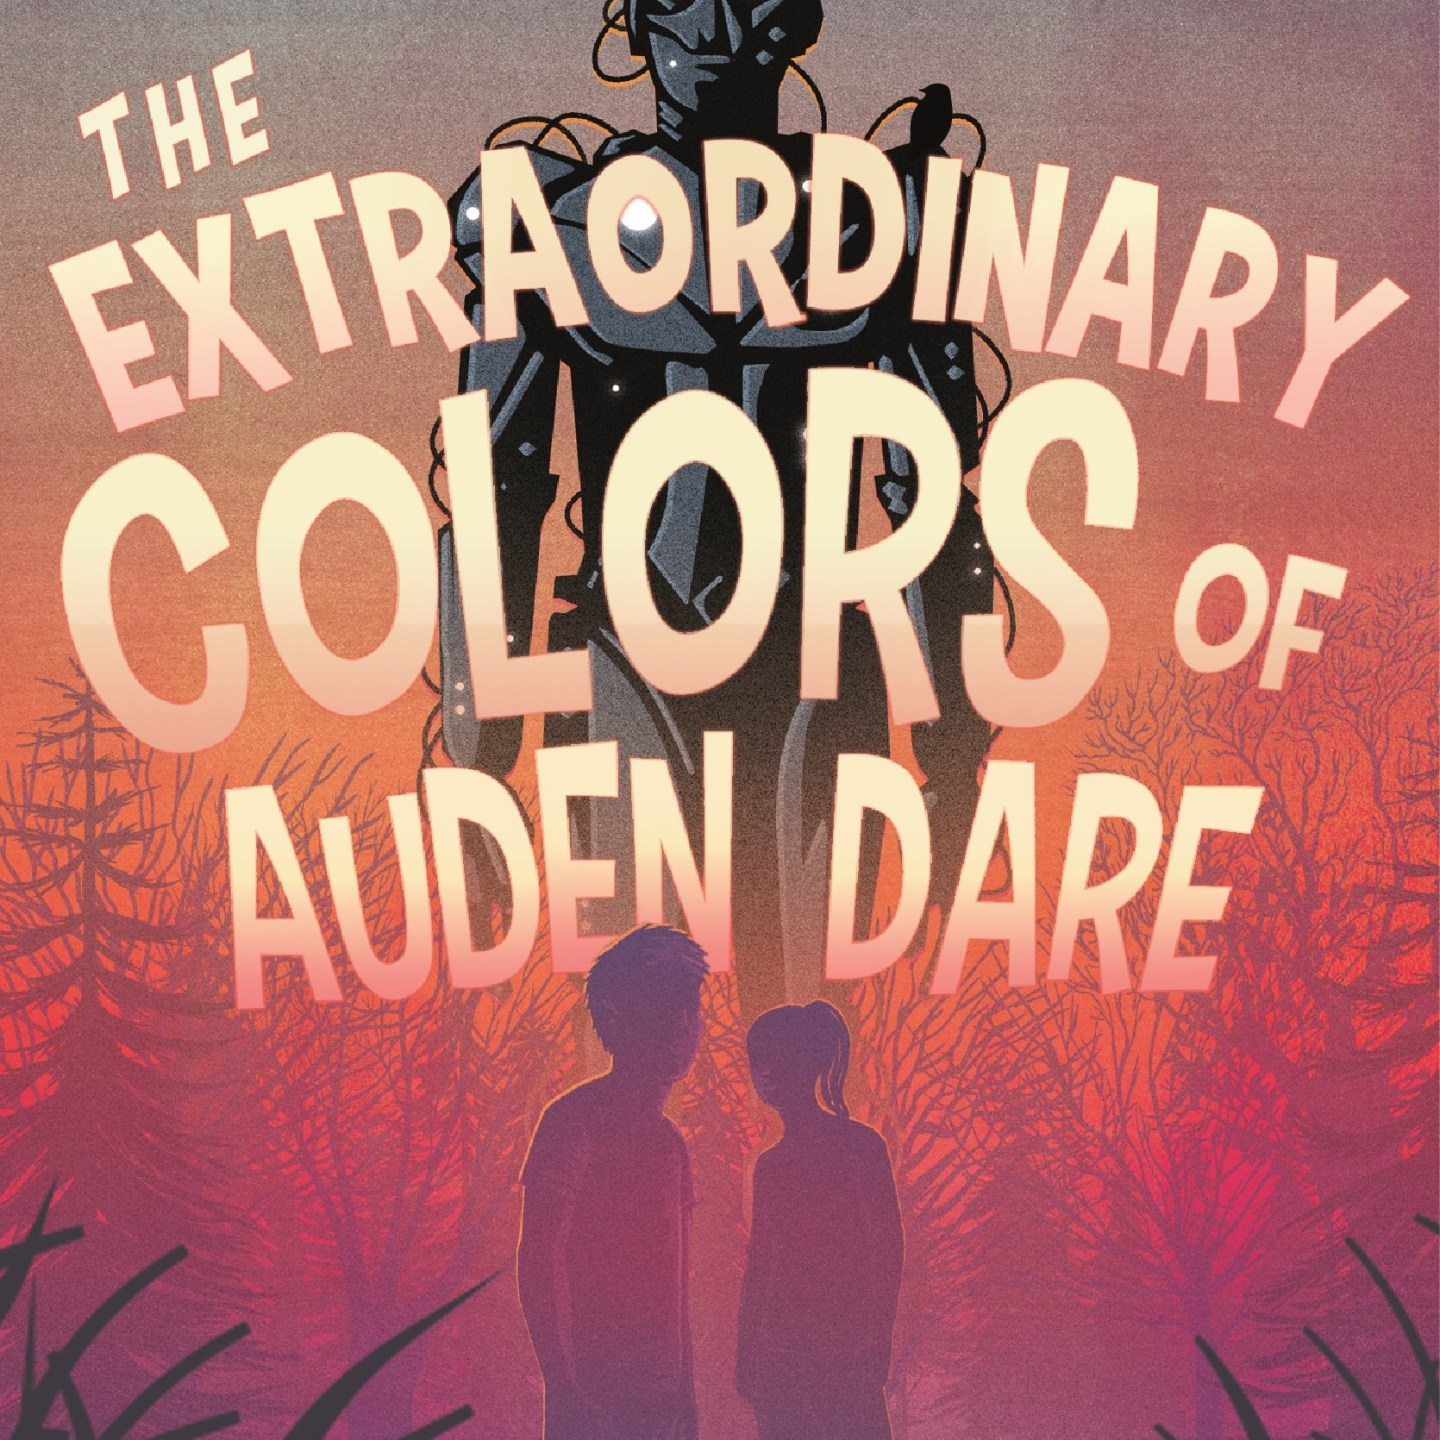 The Extraordinary Colors of Auden Dare by Zillah Bethell